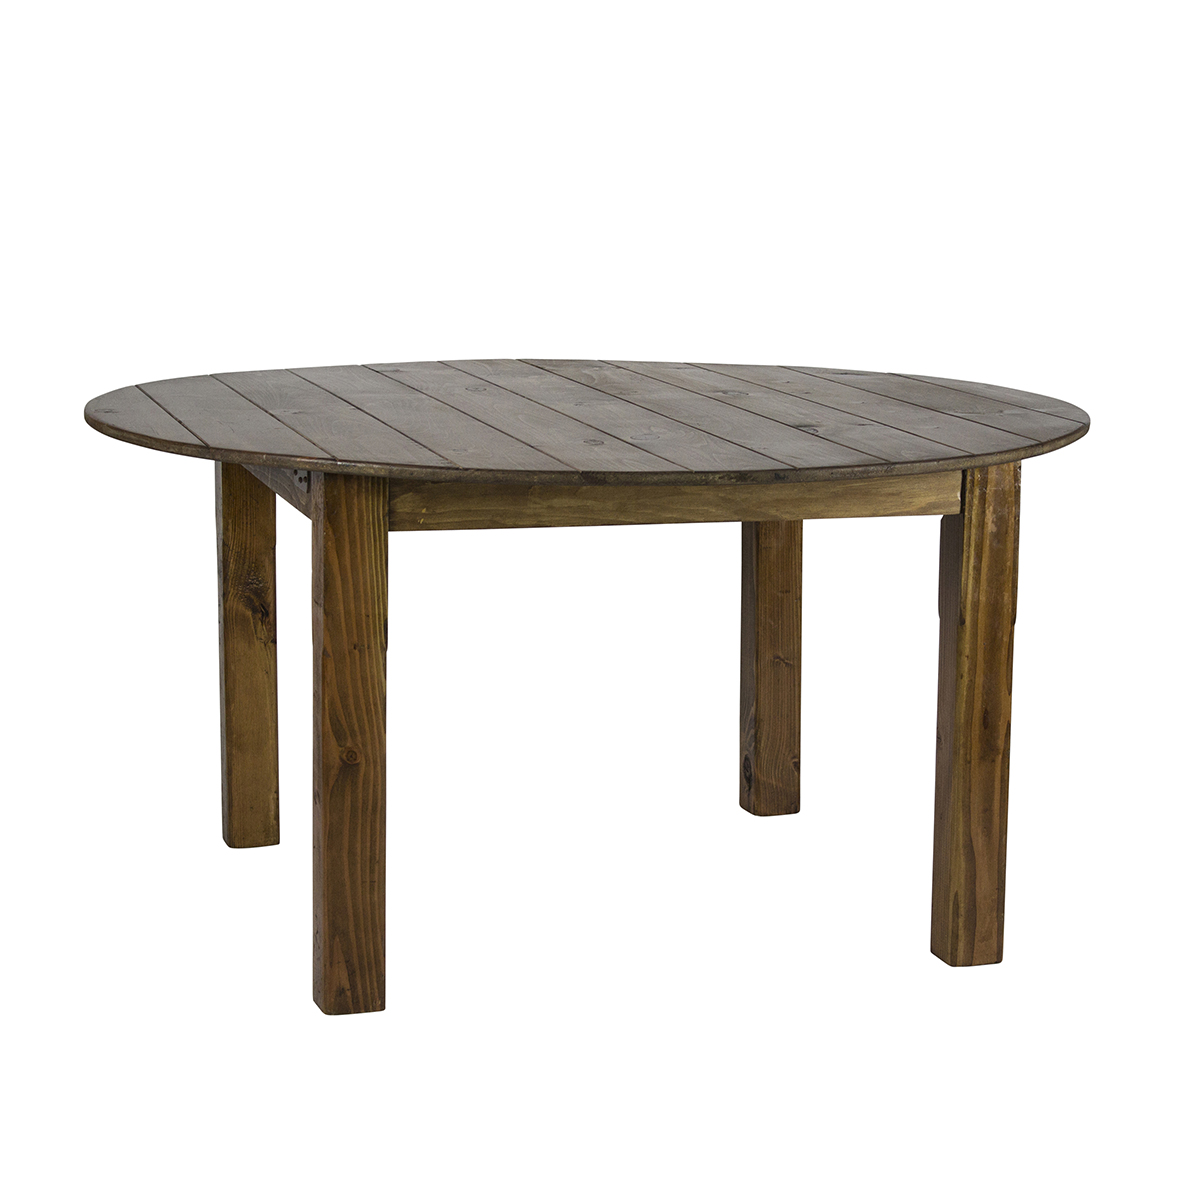 Sensational Table Farm Round 60 Gmtry Best Dining Table And Chair Ideas Images Gmtryco